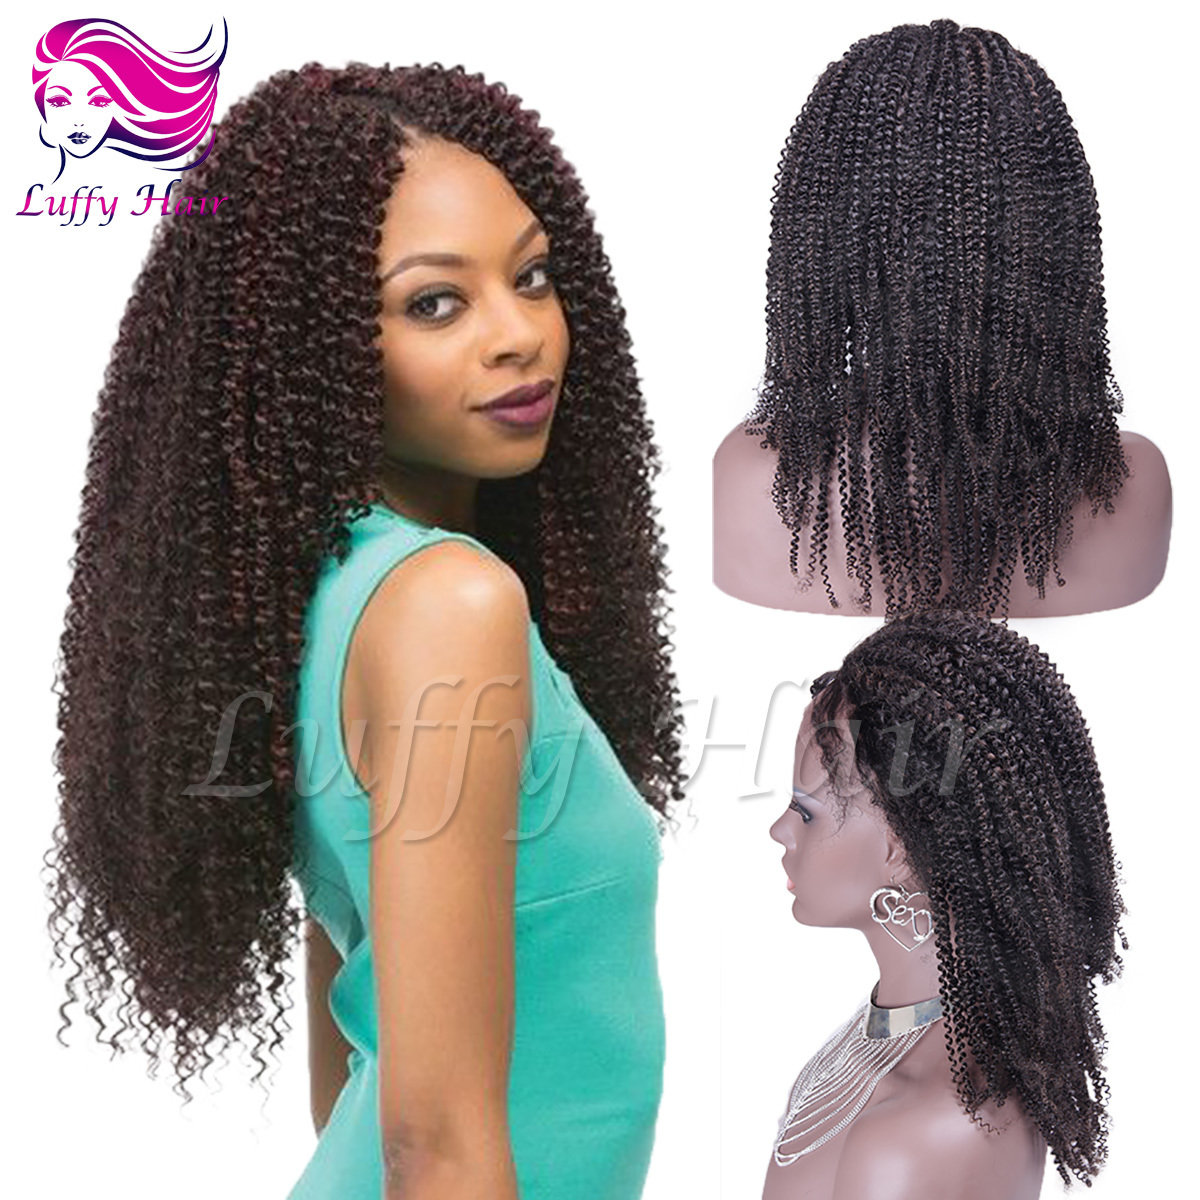 8A Virgin Human Hair Afro Kinky Curly Wig - KWL010